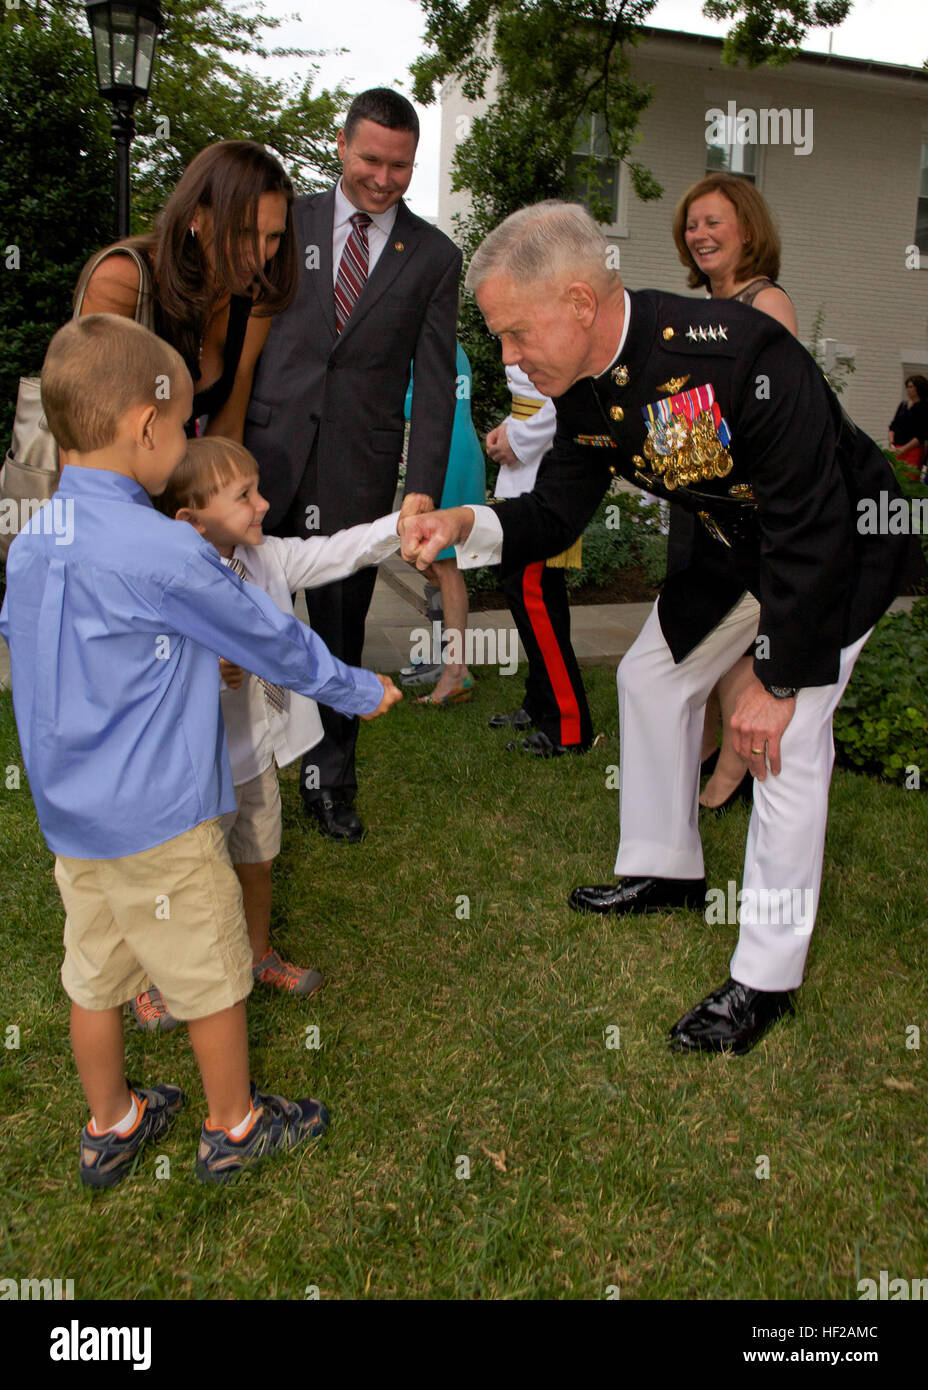 The Commandant of the U.S. Marine Corps, Gen. James F. Amos, right, greets young guests during an Evening Parade Stock Photo